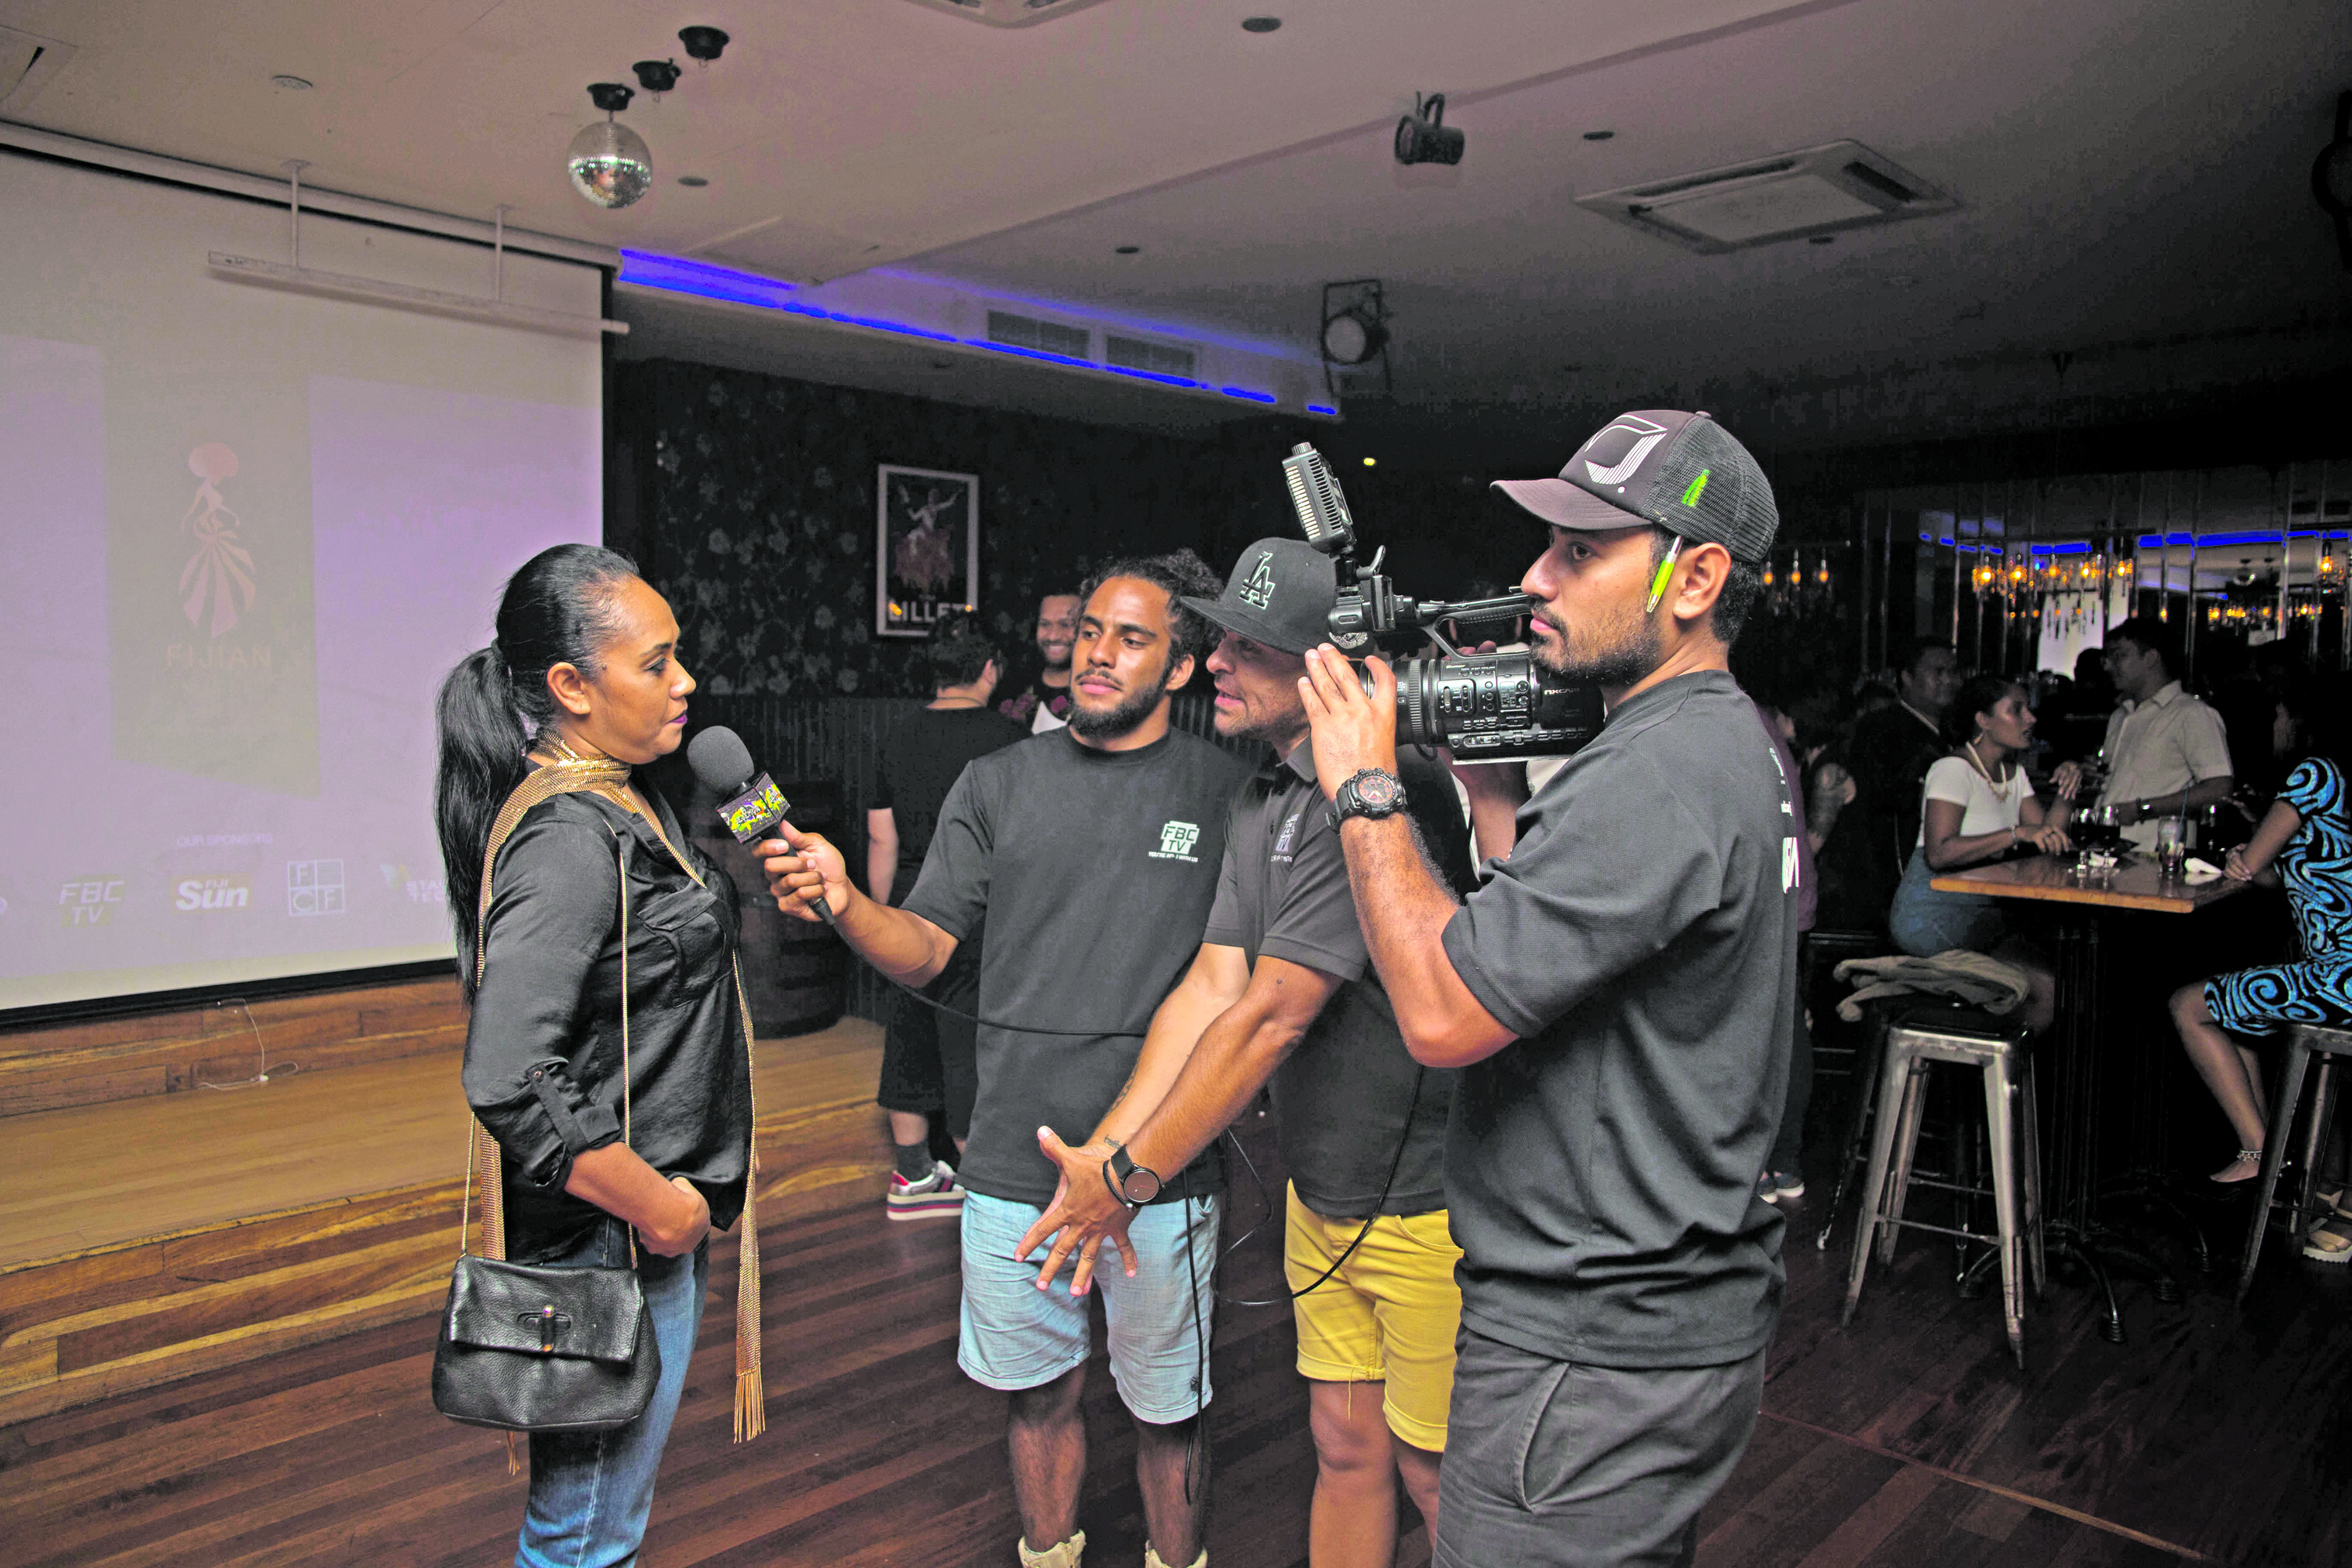 Fashion Council of Fiji Business Manager and Fijian Fashion Festival Trustee Elaine Taylor being interviewed by media partner FBC.